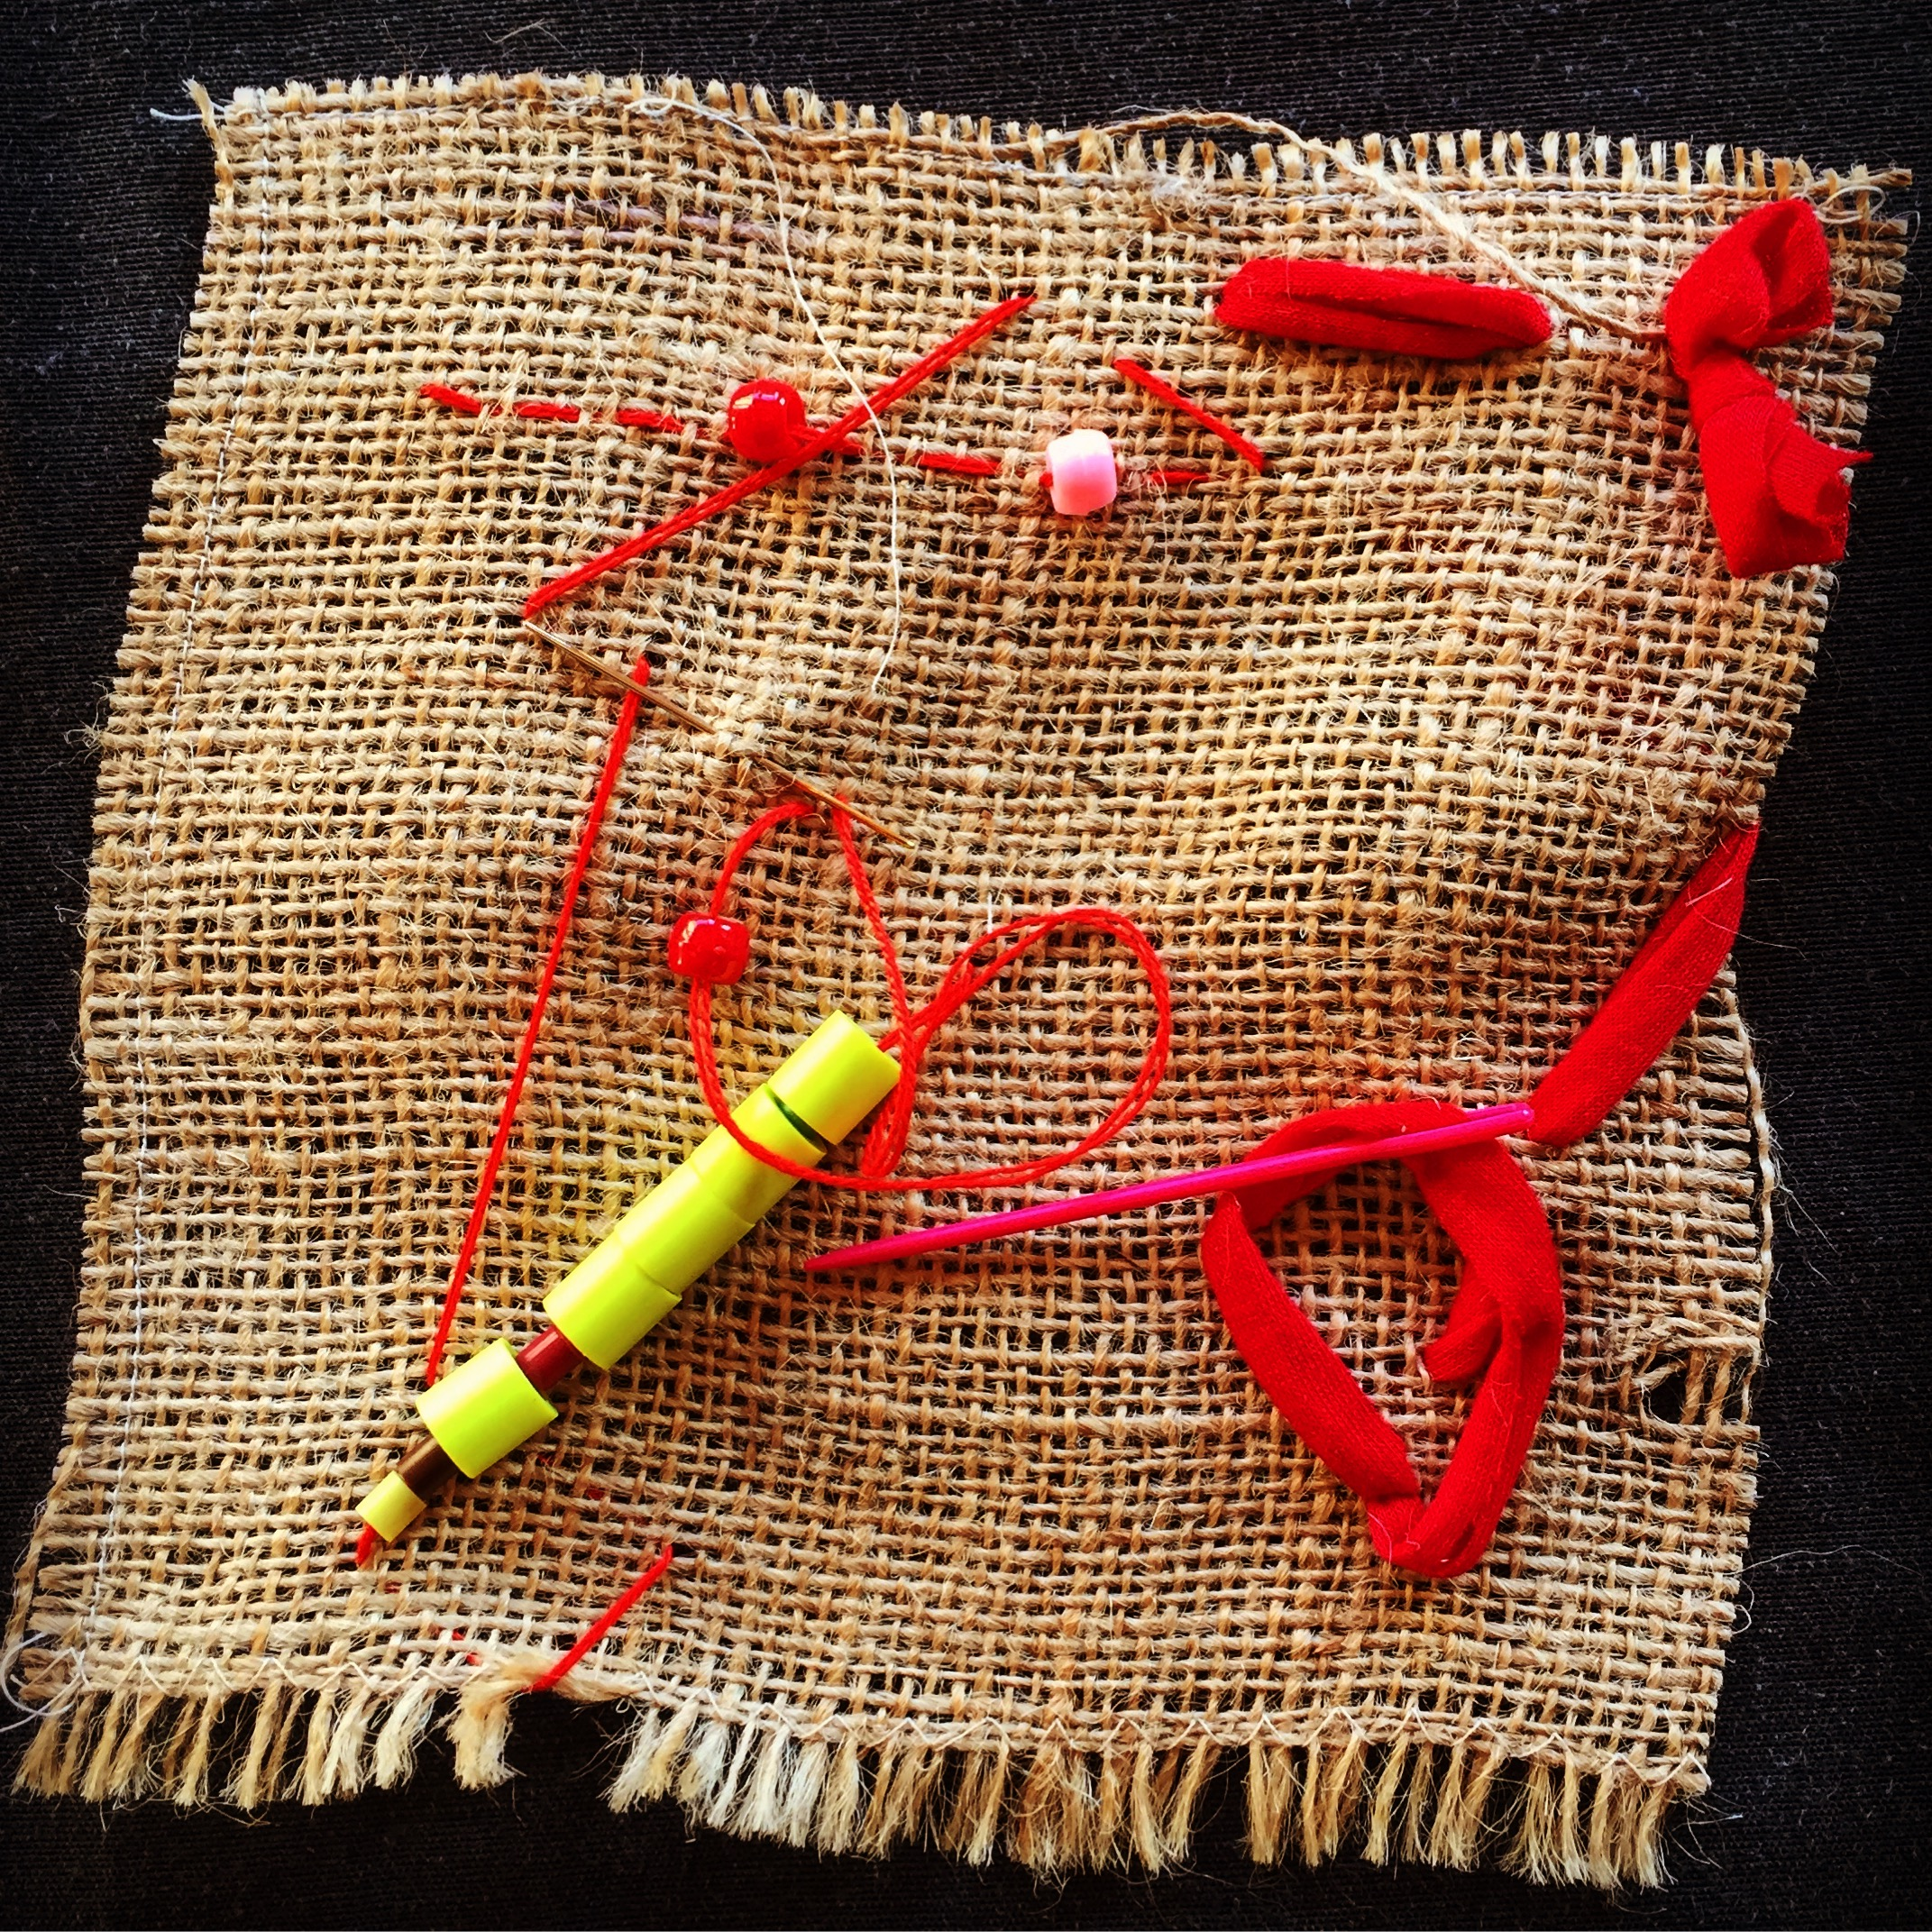 Kids weaving and sewing on burlap